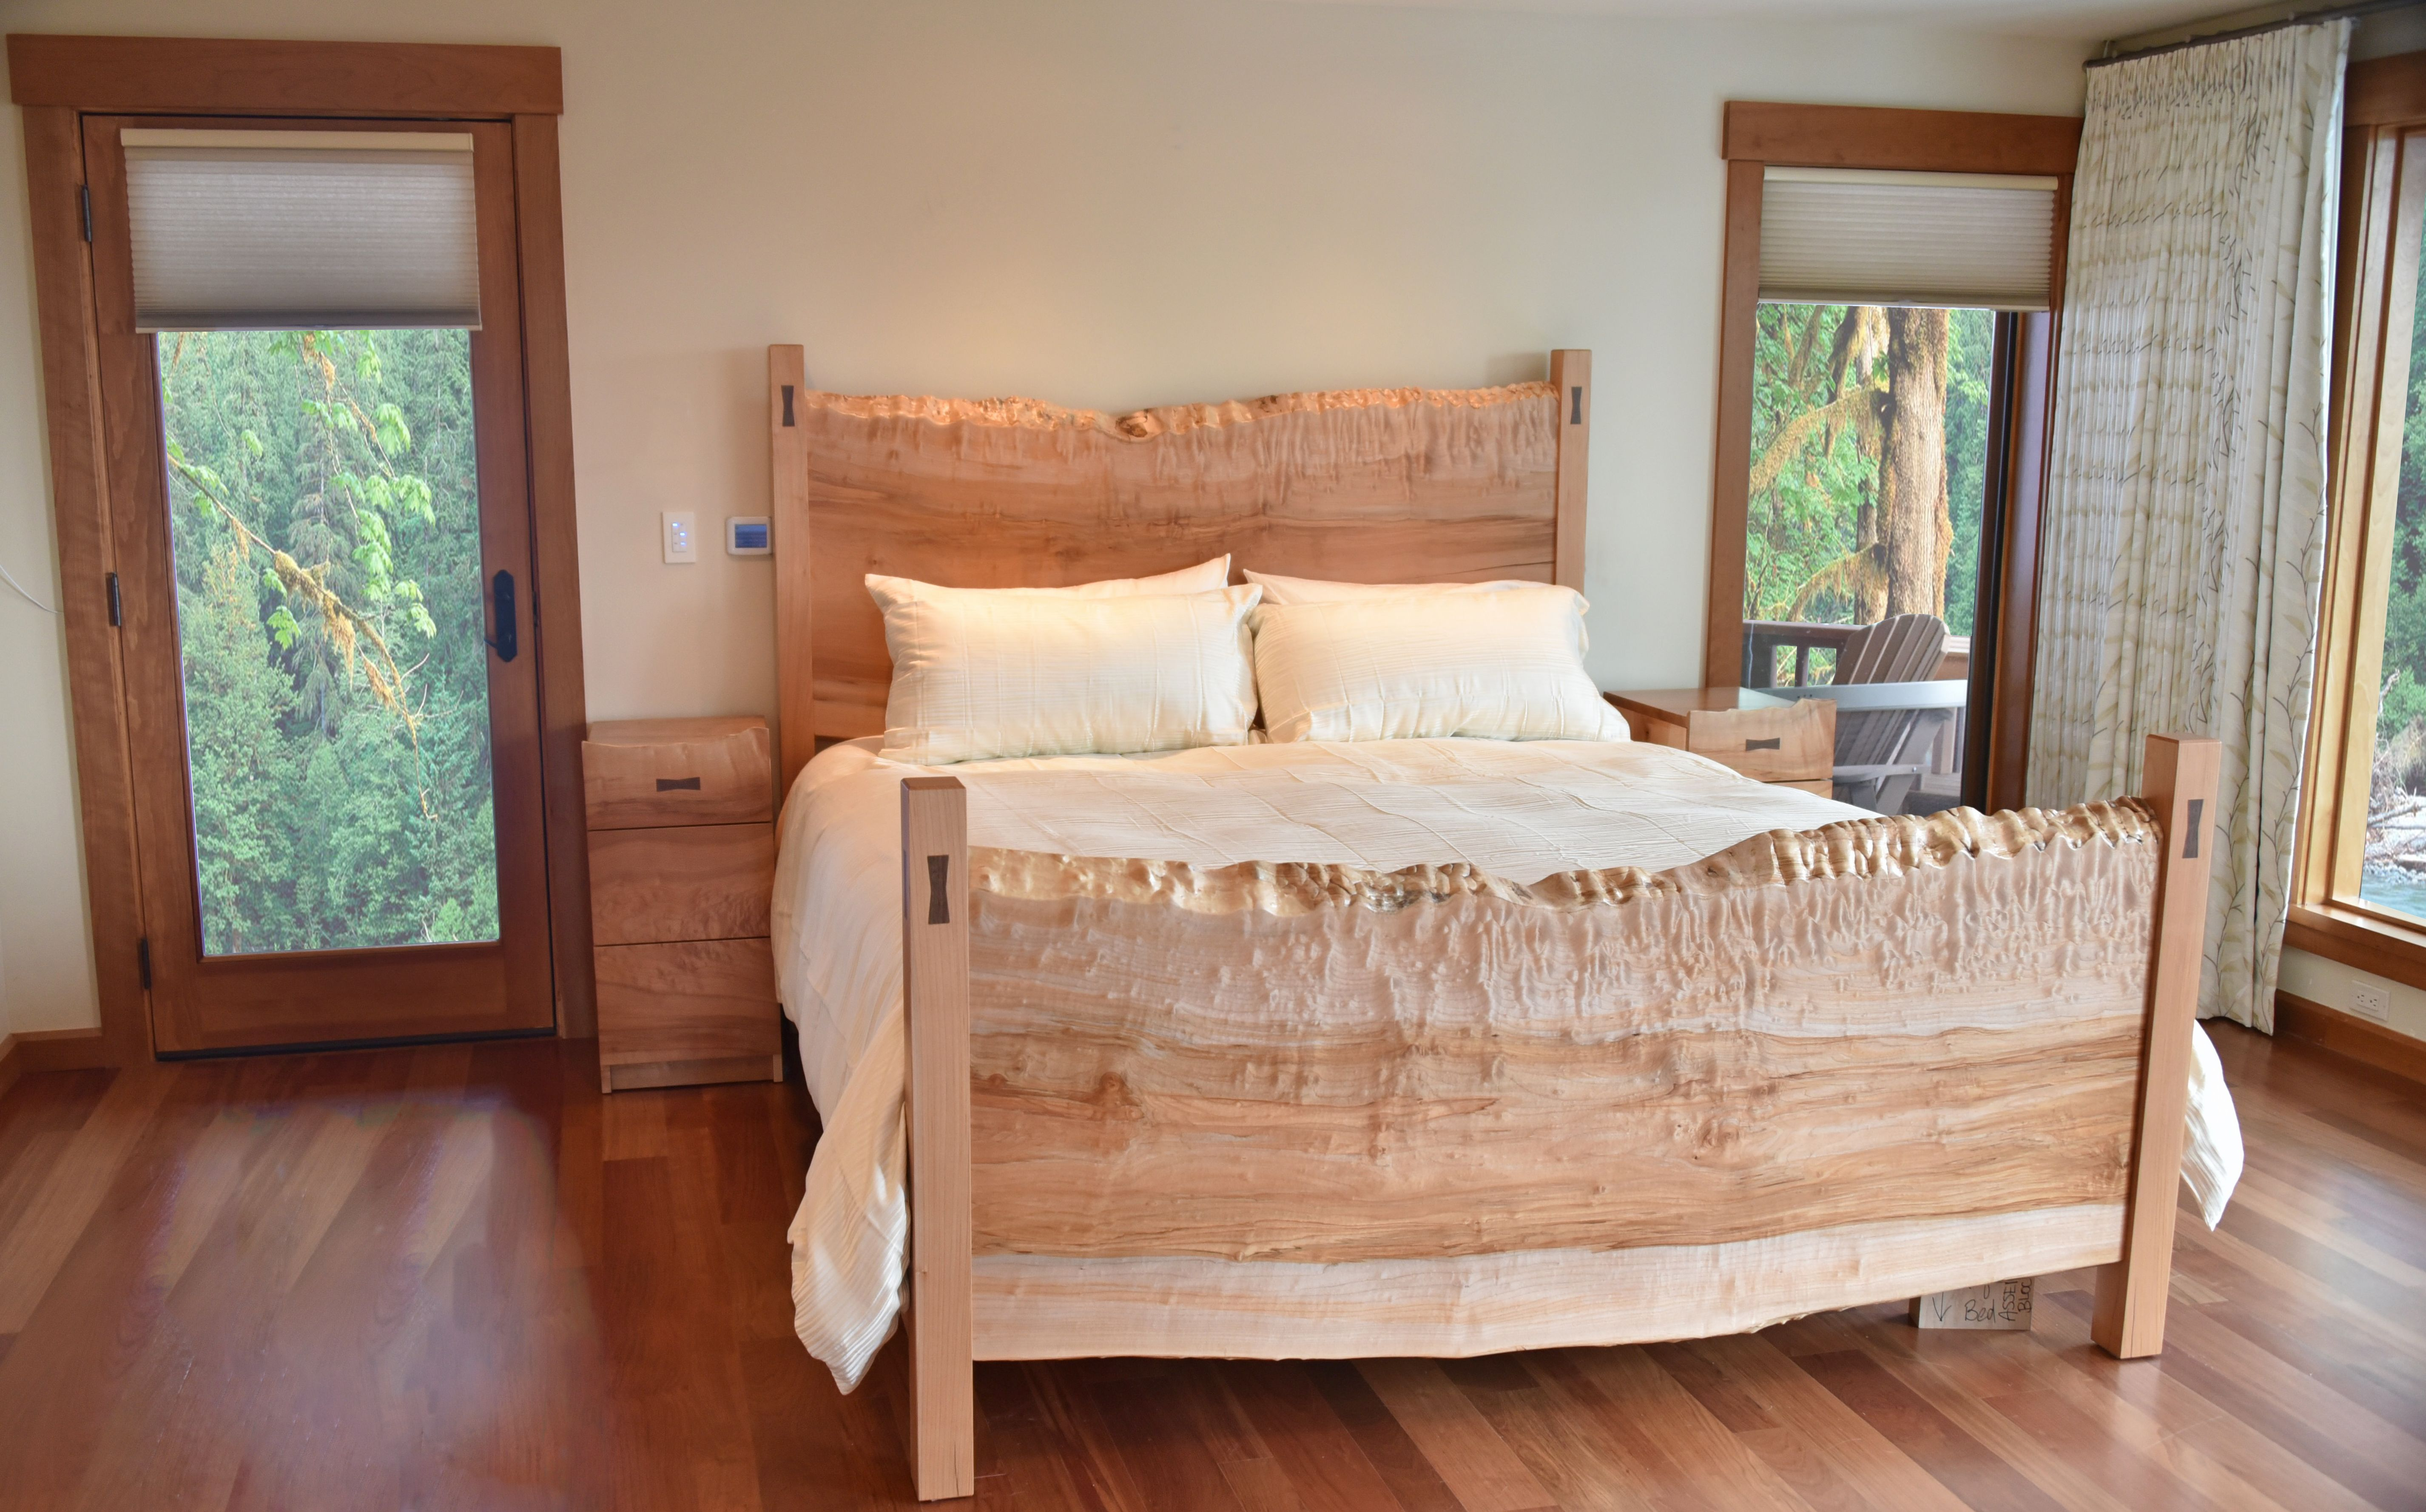 Custom west coast bedroom furniture with a natural edge by